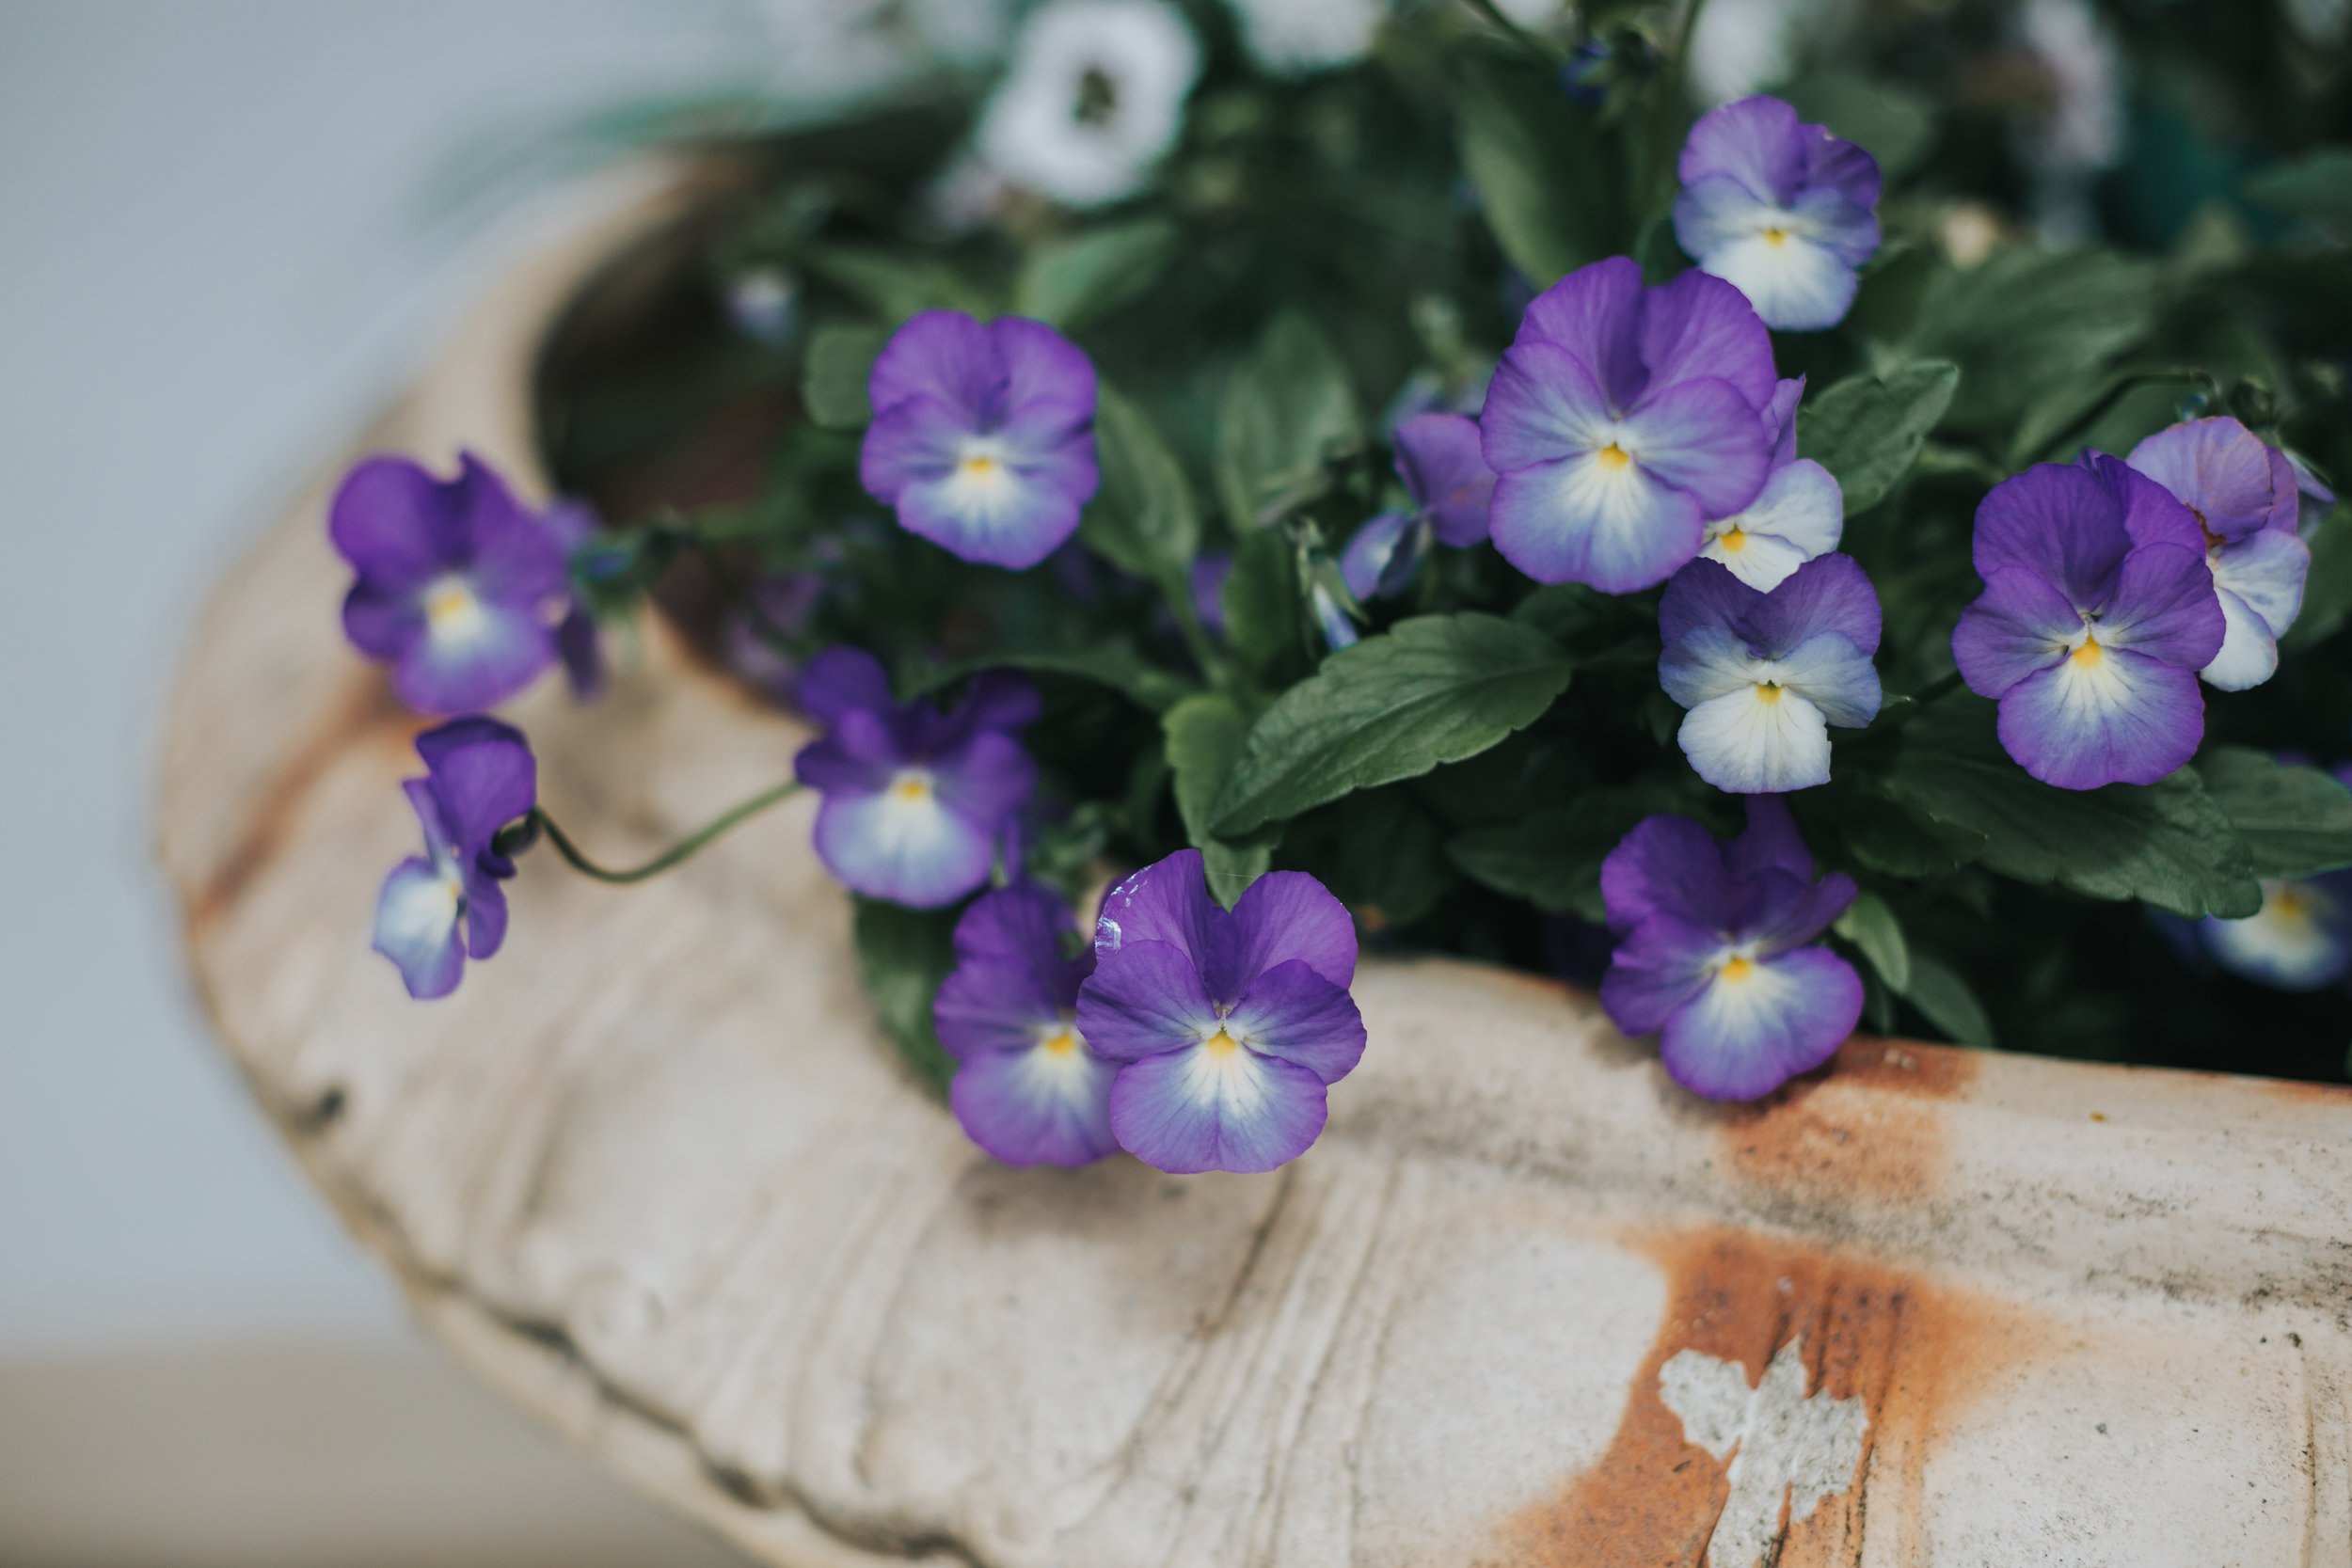 Blue pansy flowers in pot.